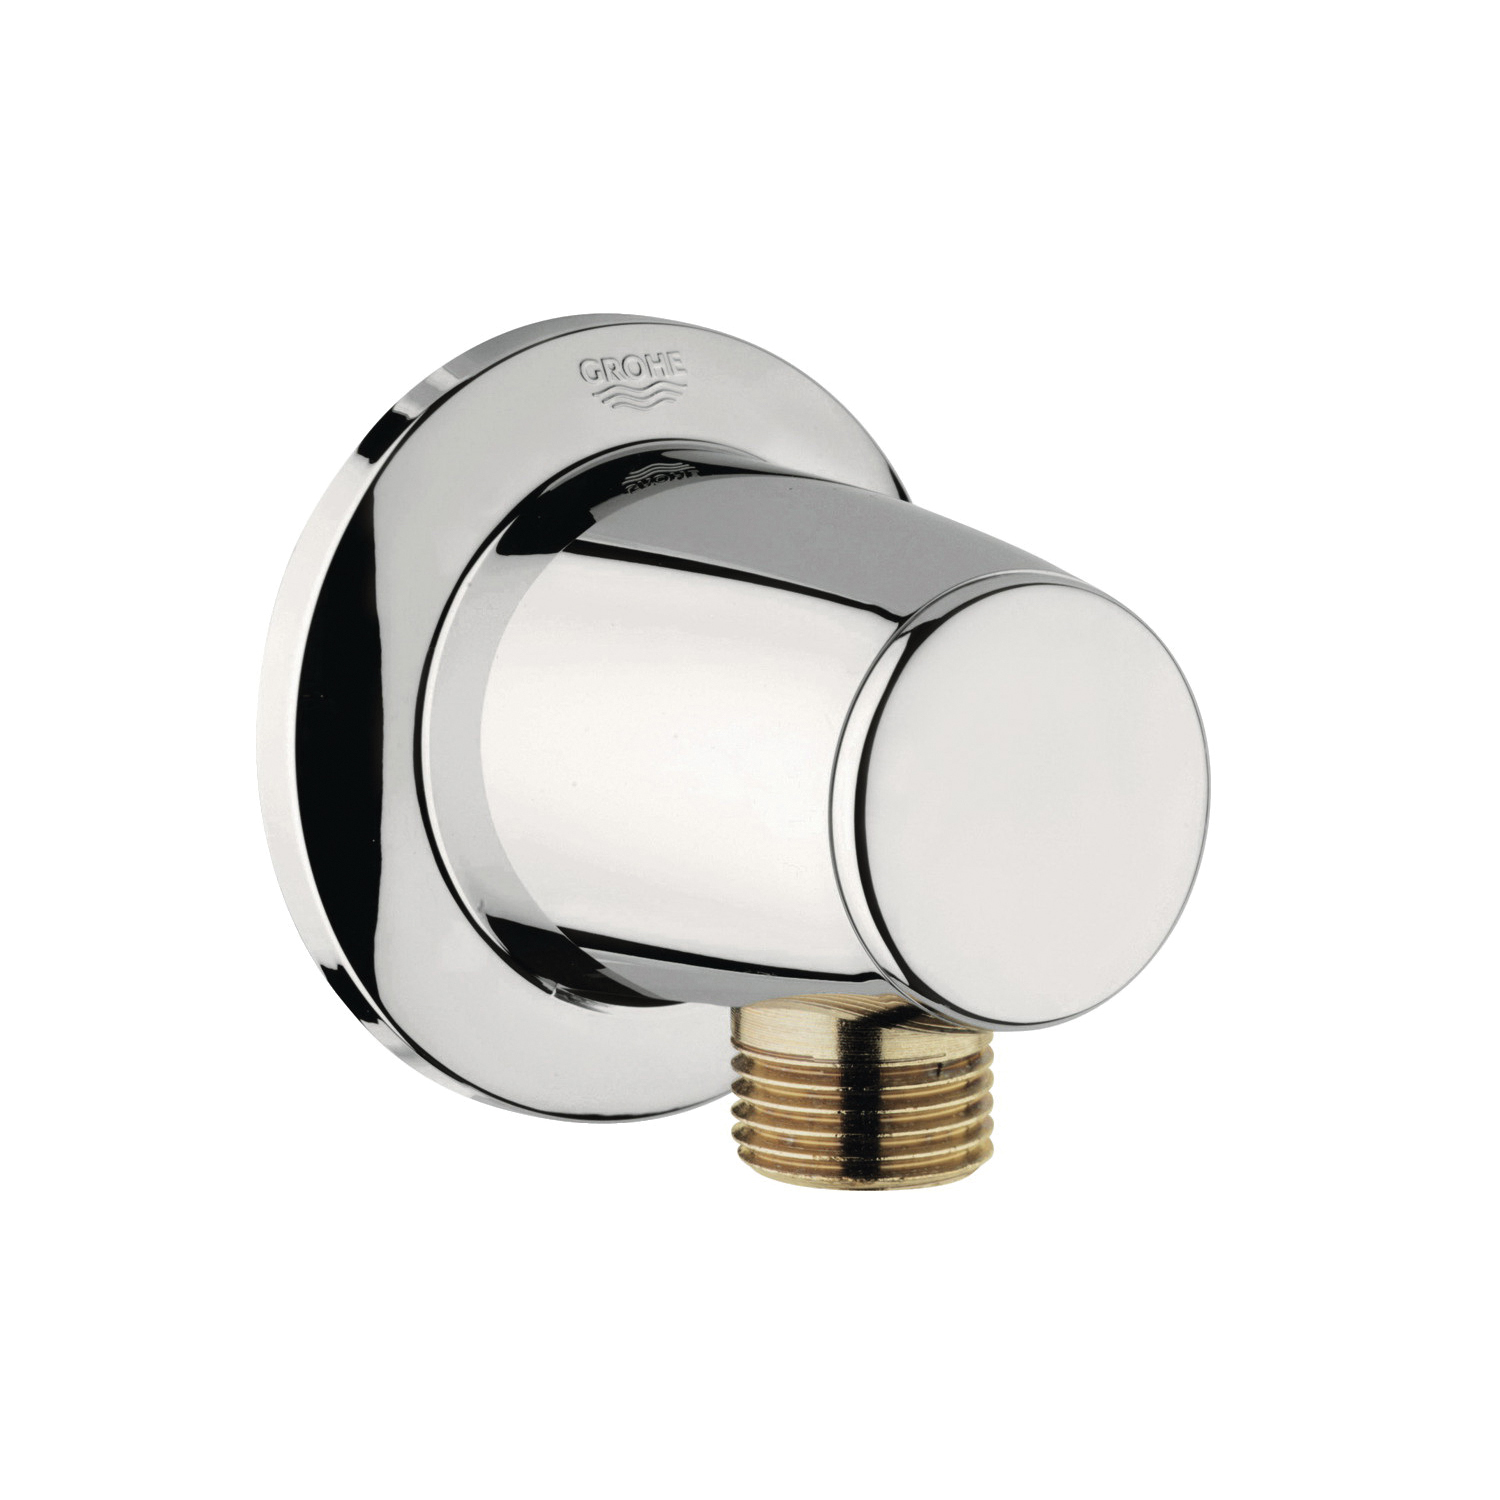 GROHE 28459BE0 Movario Shower Outlet Elbow, 1/2 in, FNPT, Brass, Import